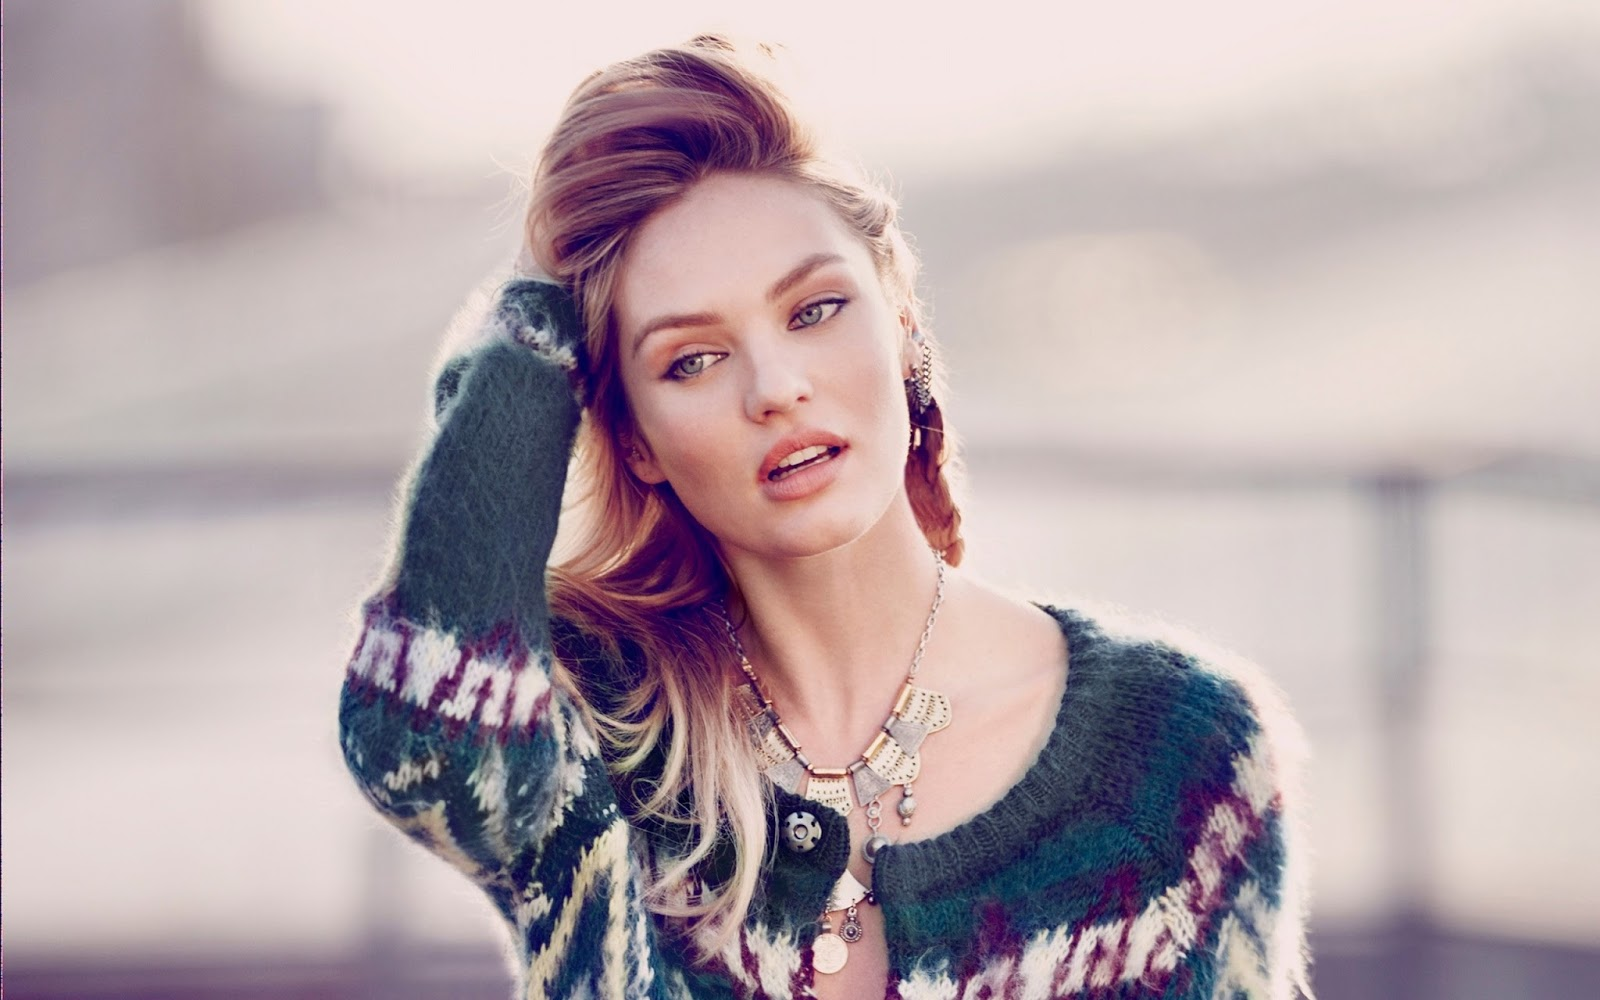 Hollywood News: Candice swanepoel wallpaper hd Wallpaper